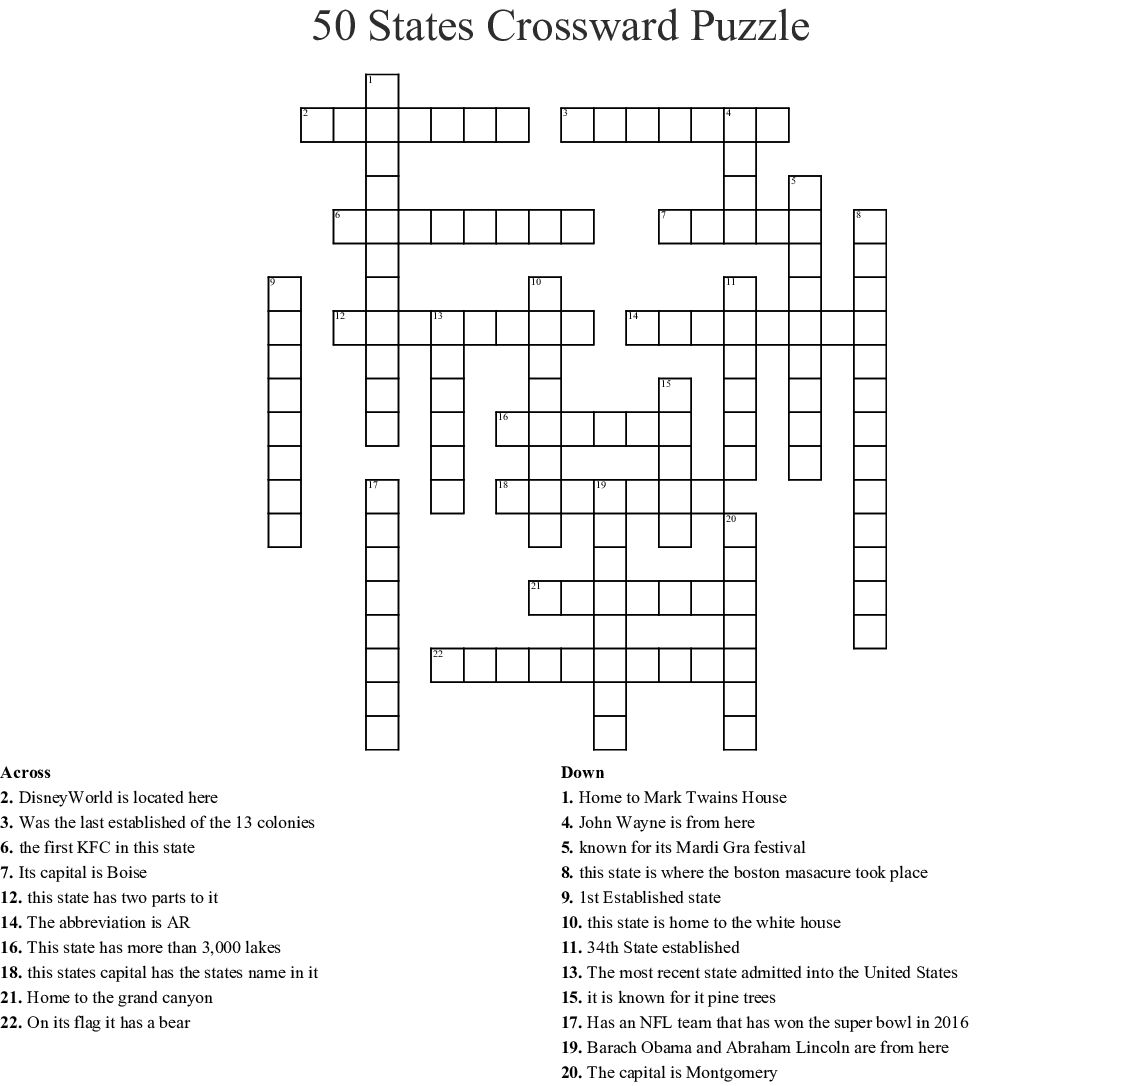 50 States Crossward Puzzle Crossword - Wordmint - Printable United States Crossword Puzzle